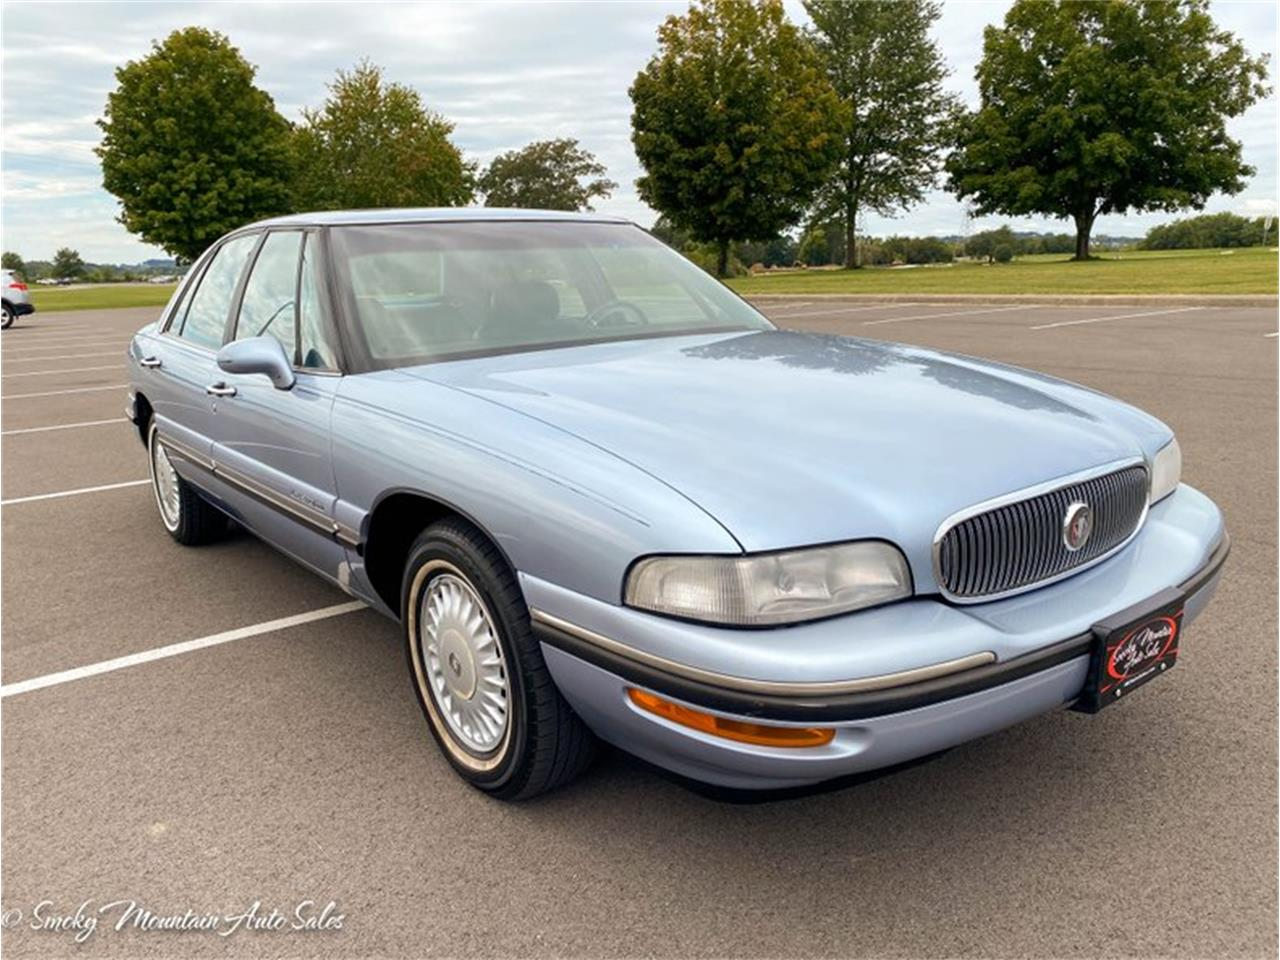 1997 Buick LeSabre (CC-1409826) for sale in Lenoir City, Tennessee